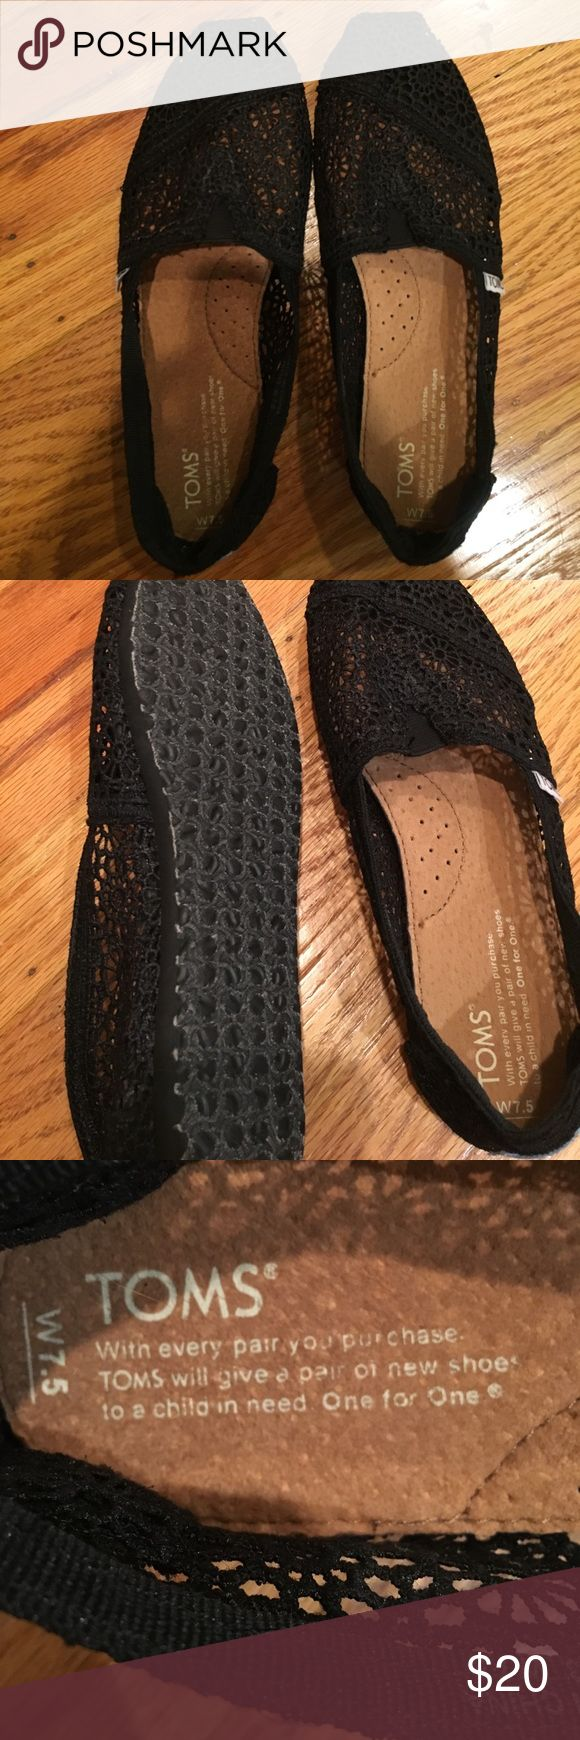 Lace black toms Woman's size 7.5 black lace toms. Worn maybe once but they're in great condition and practically new. I'm open to offers! Toms Shoes Flats & Loafers